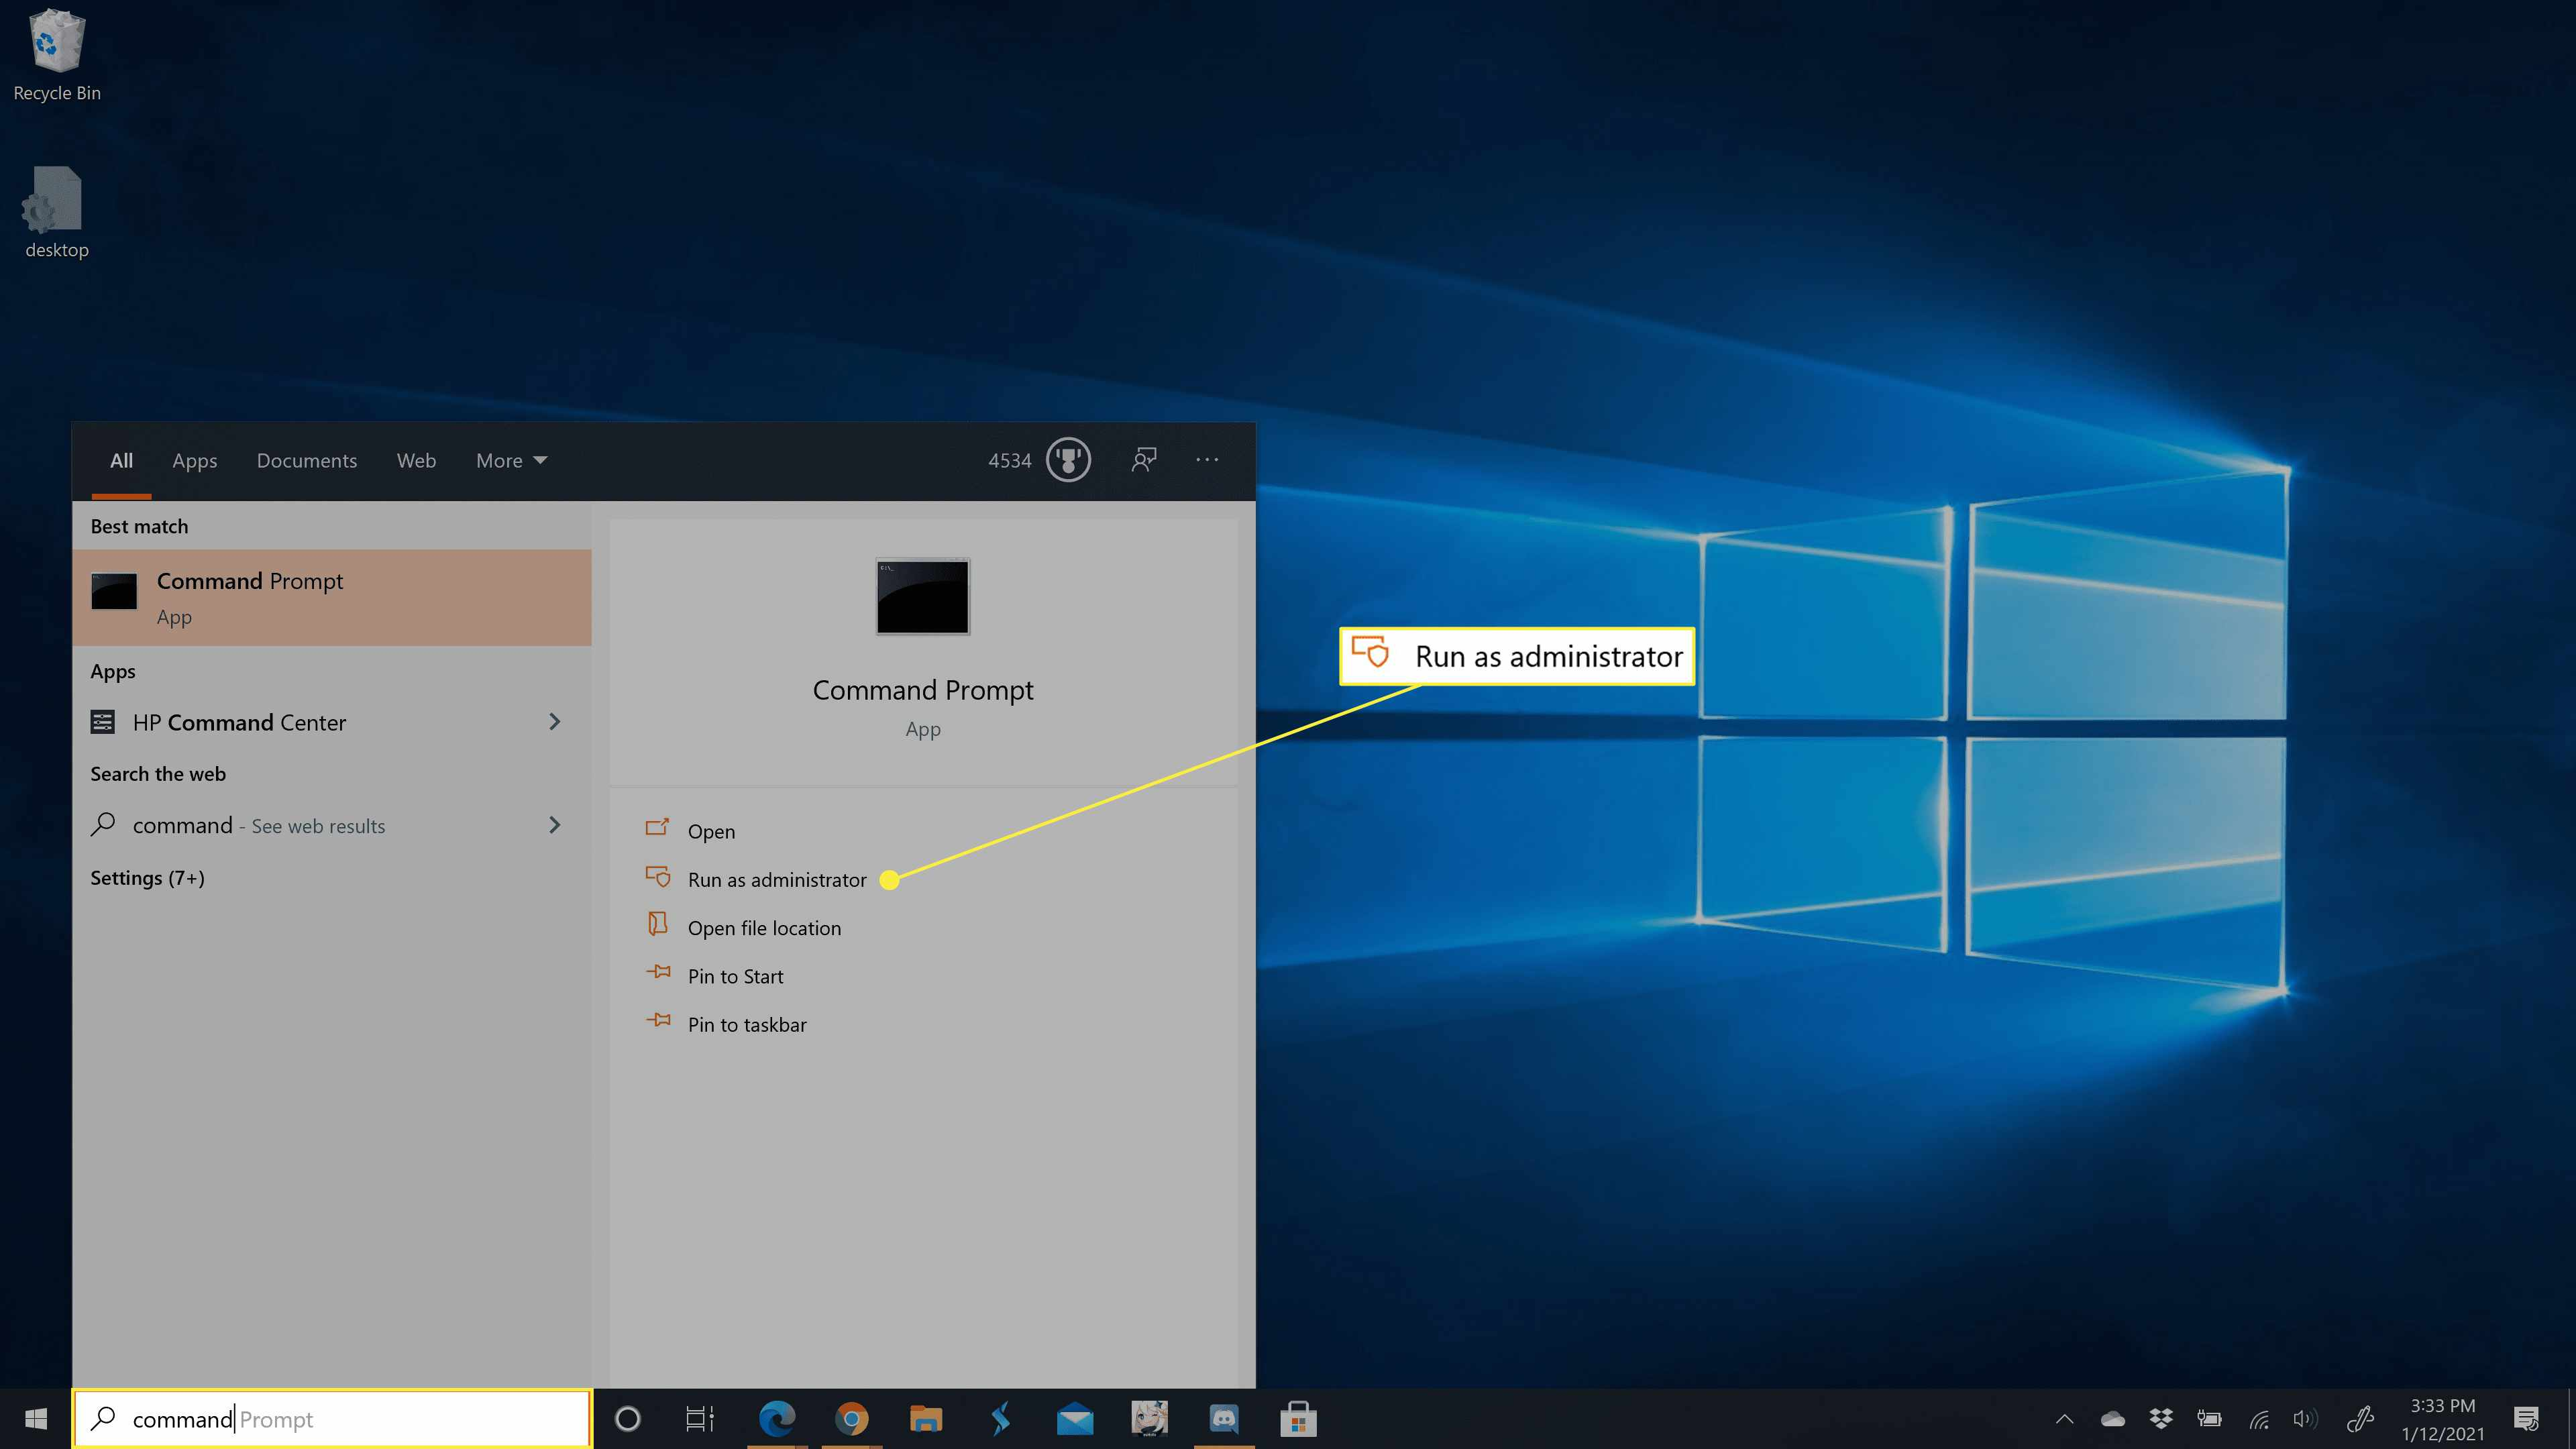 Command prompt in the Windows 10 taskbar search results.